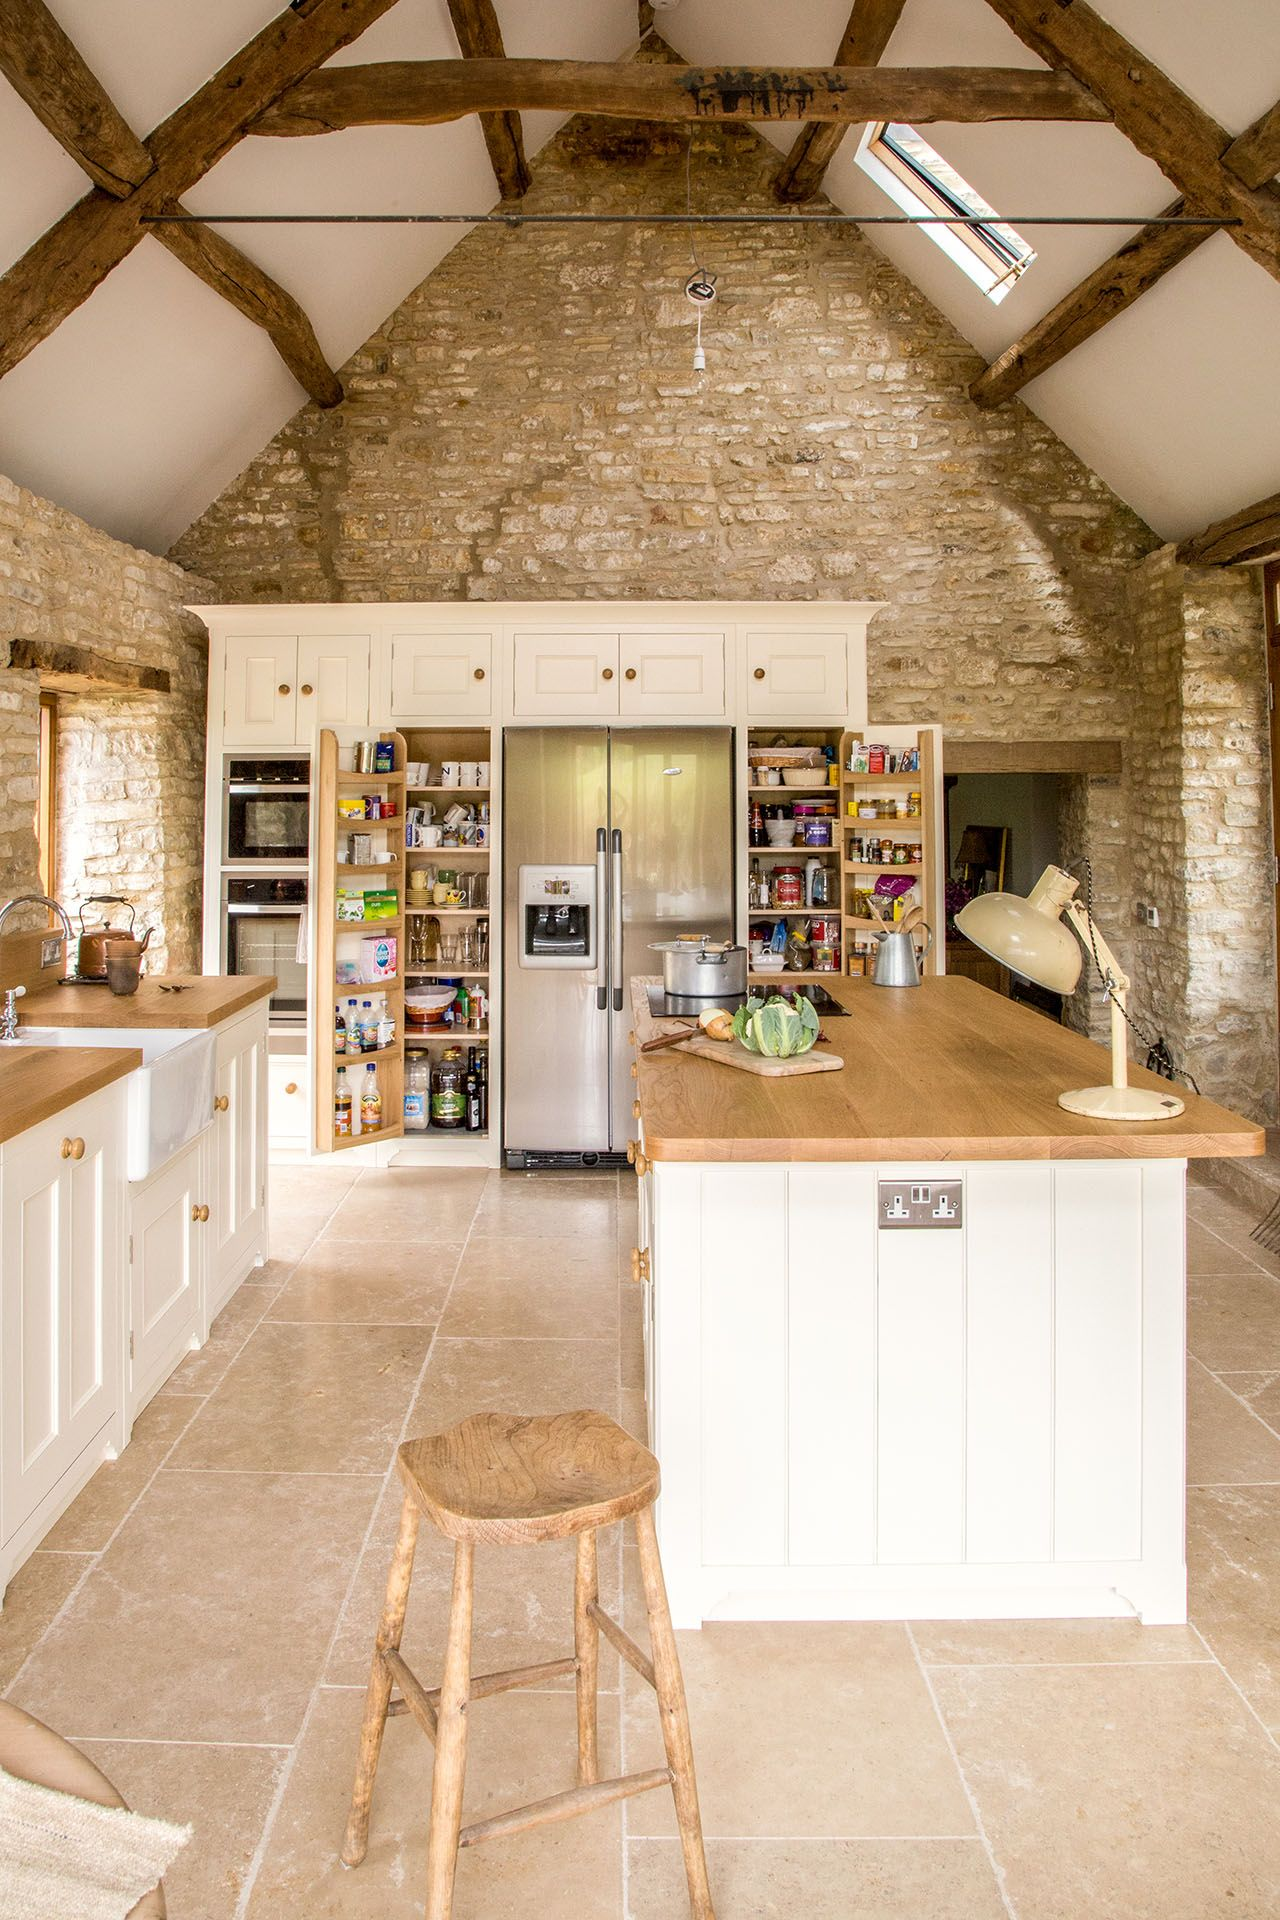 Traditional Country Kitchen with vaulted ceiling and large